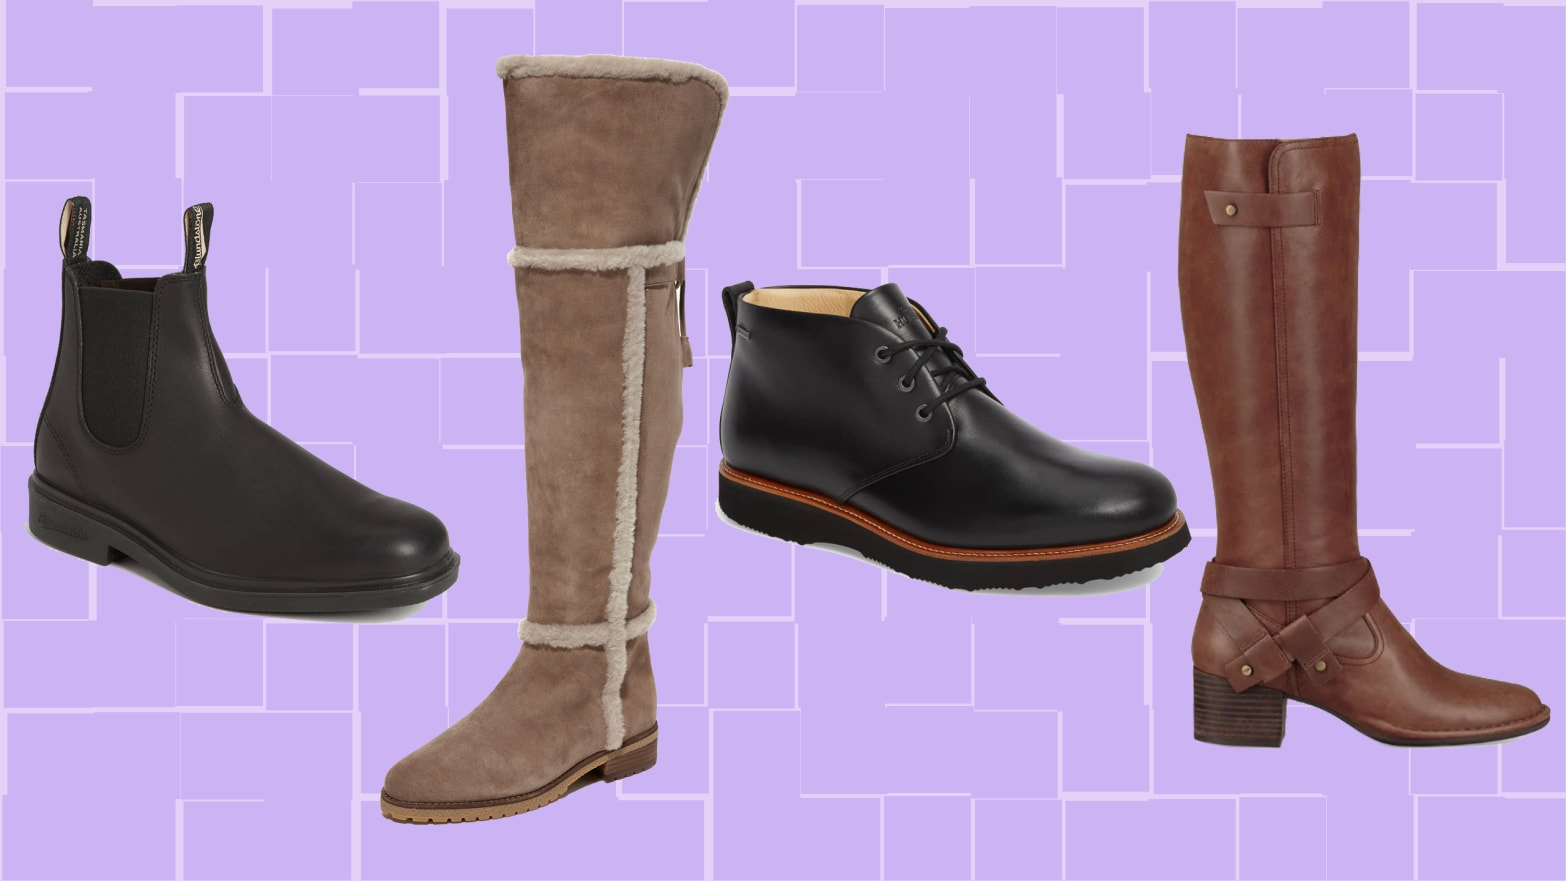 b6cc44b60ee Winter Boots That You Can Wear All Day